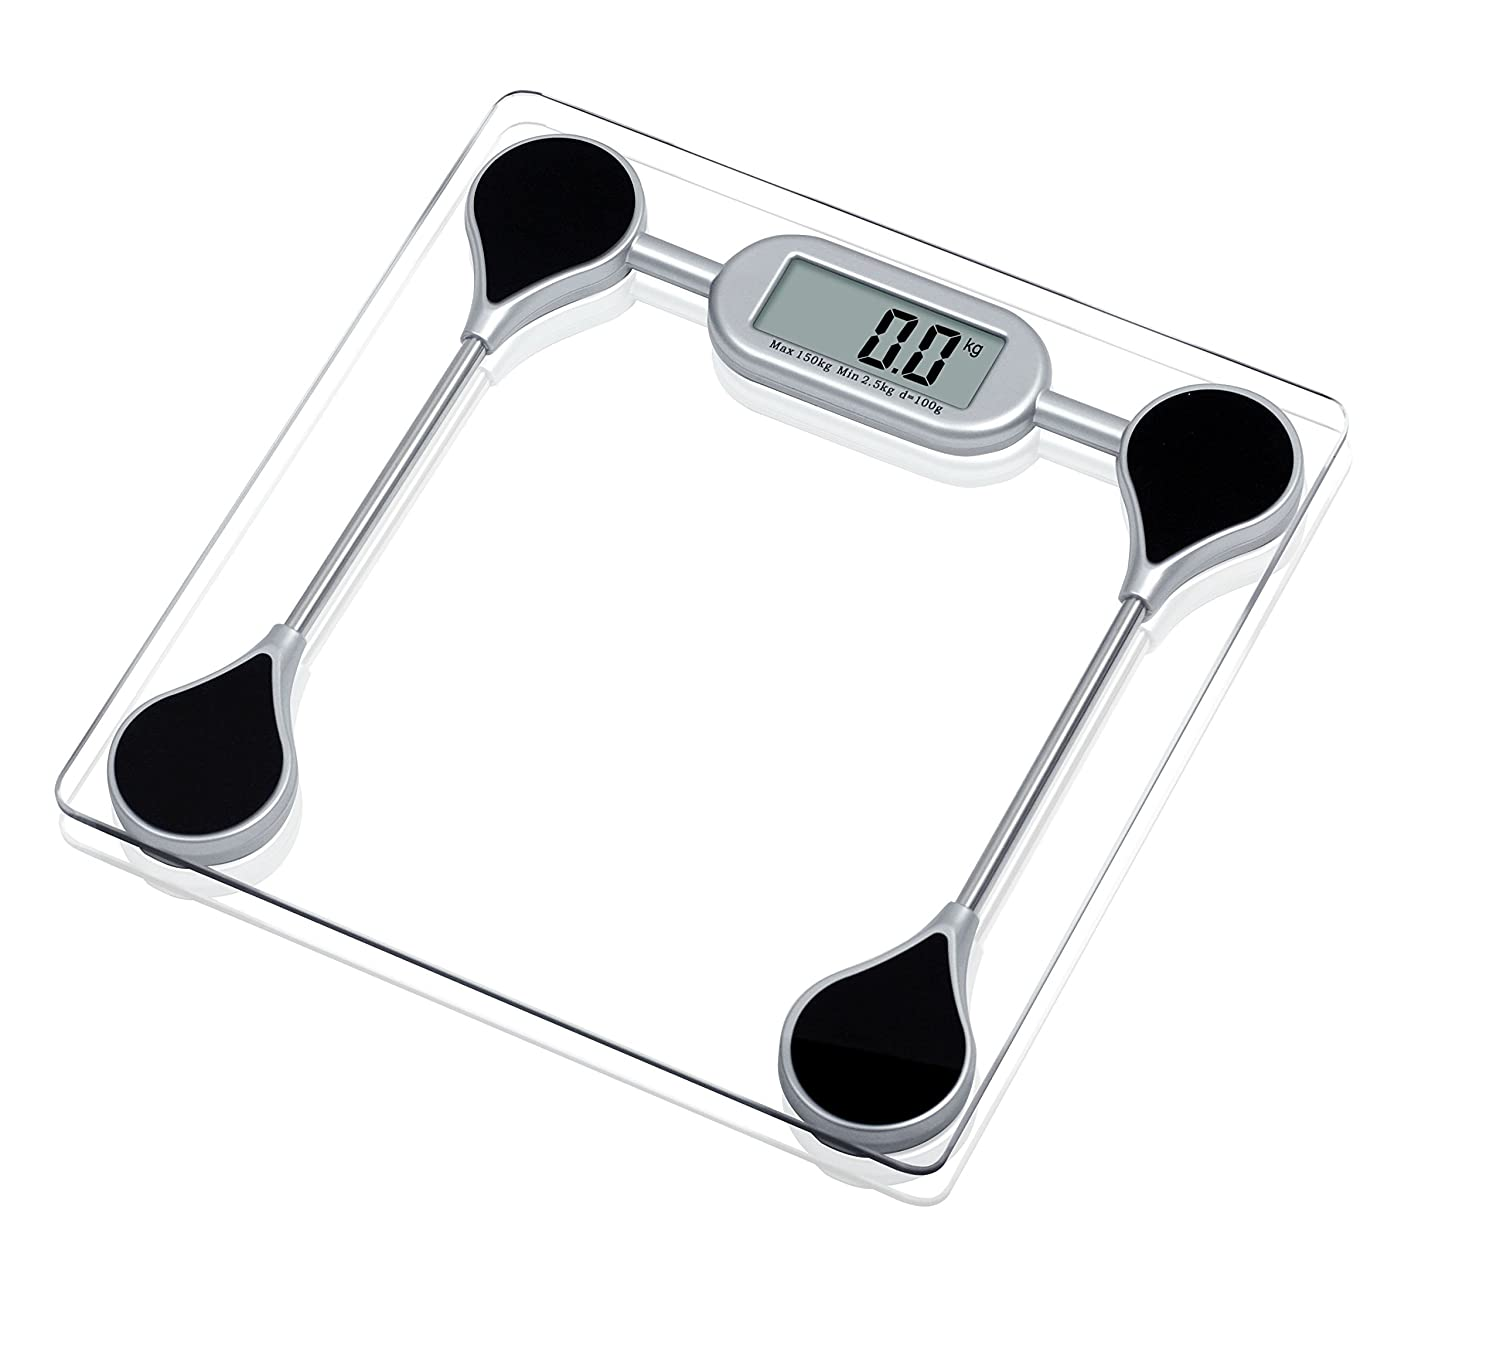 venus digital body weight personal weighing scale transparent rh amazon in bathroom weight scales amazon bathroom weight scales digital